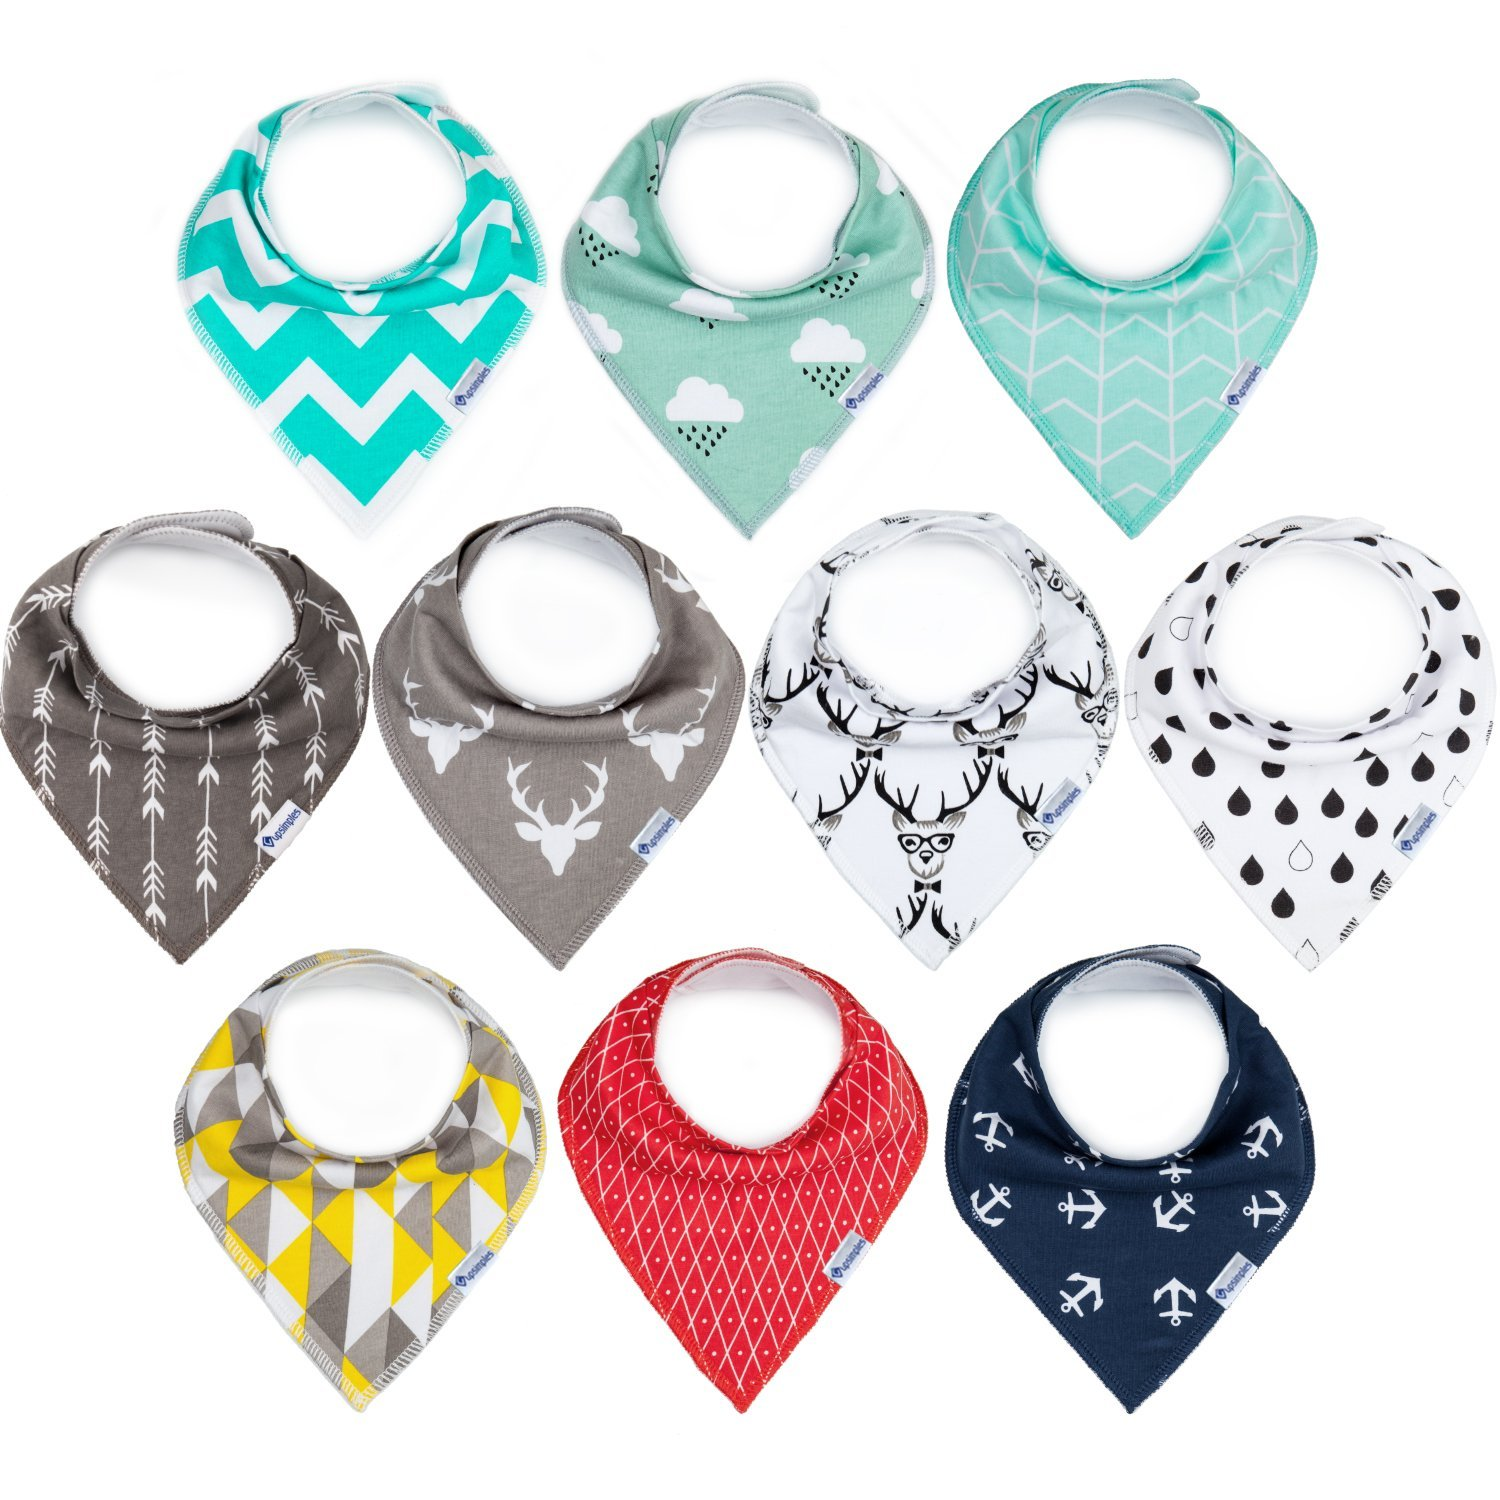 100/% Cotton and Super Absorbent Bibs for Baby Boys and Girls Baby Shower Gift Set 10-Pack Baby Bibs Upsimples Baby Bandana Drool Bibs Unisex for Drooling and Teething